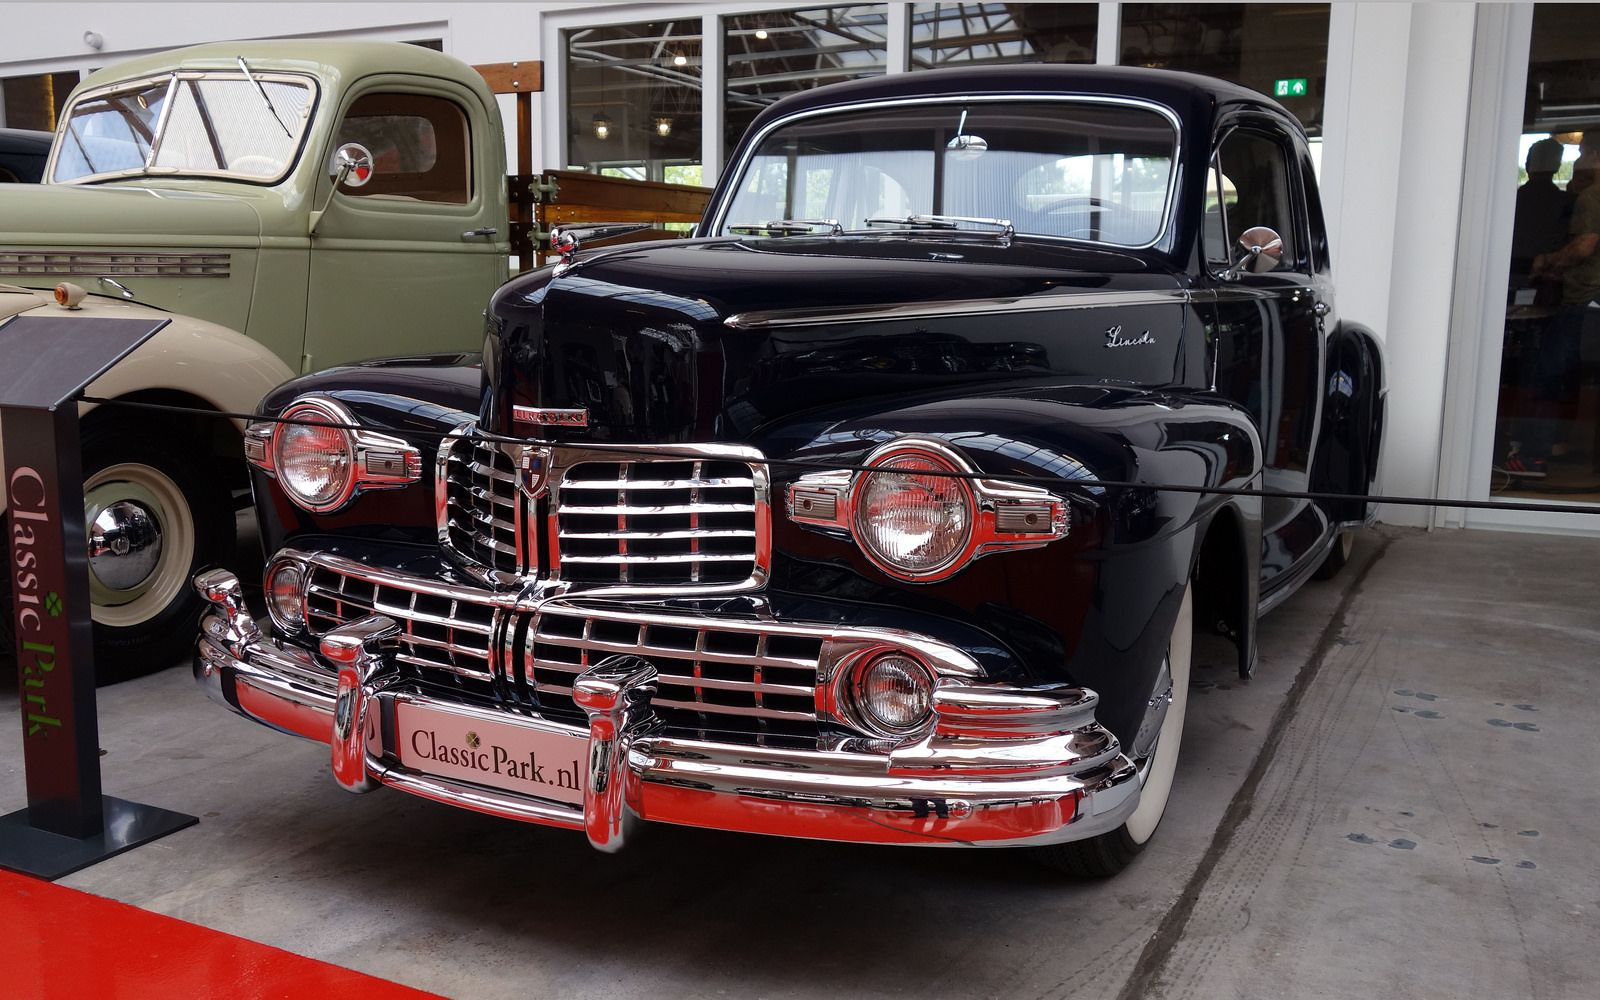 1947 Lincoln Club Coupe - Body Type 76H77 | American Cars of the 30s ...